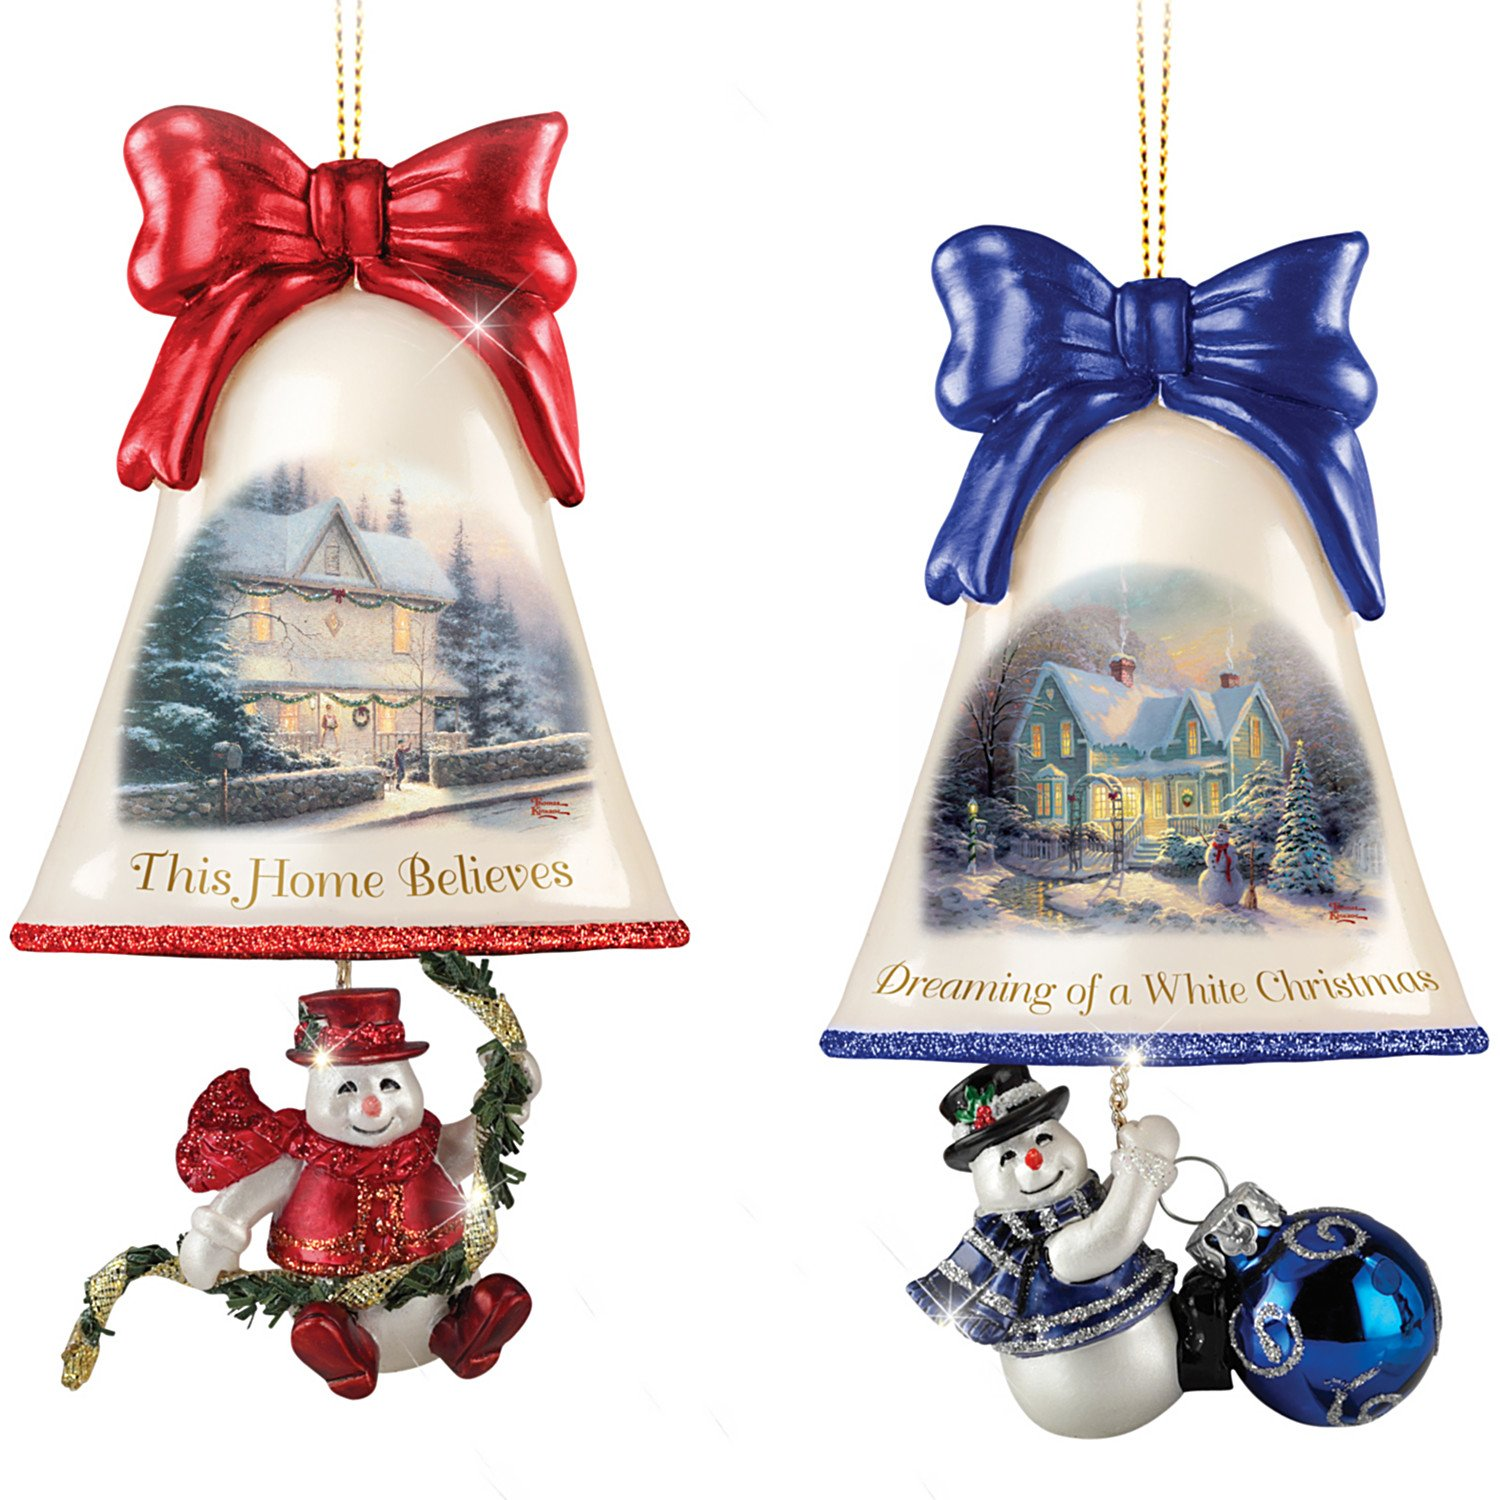 Bradford Exchange Christmas Ornaments: Thomas Kinkade Ringing In The Holidays Ornament Set: Set 3 The Bradford Exchange 01-15342-003